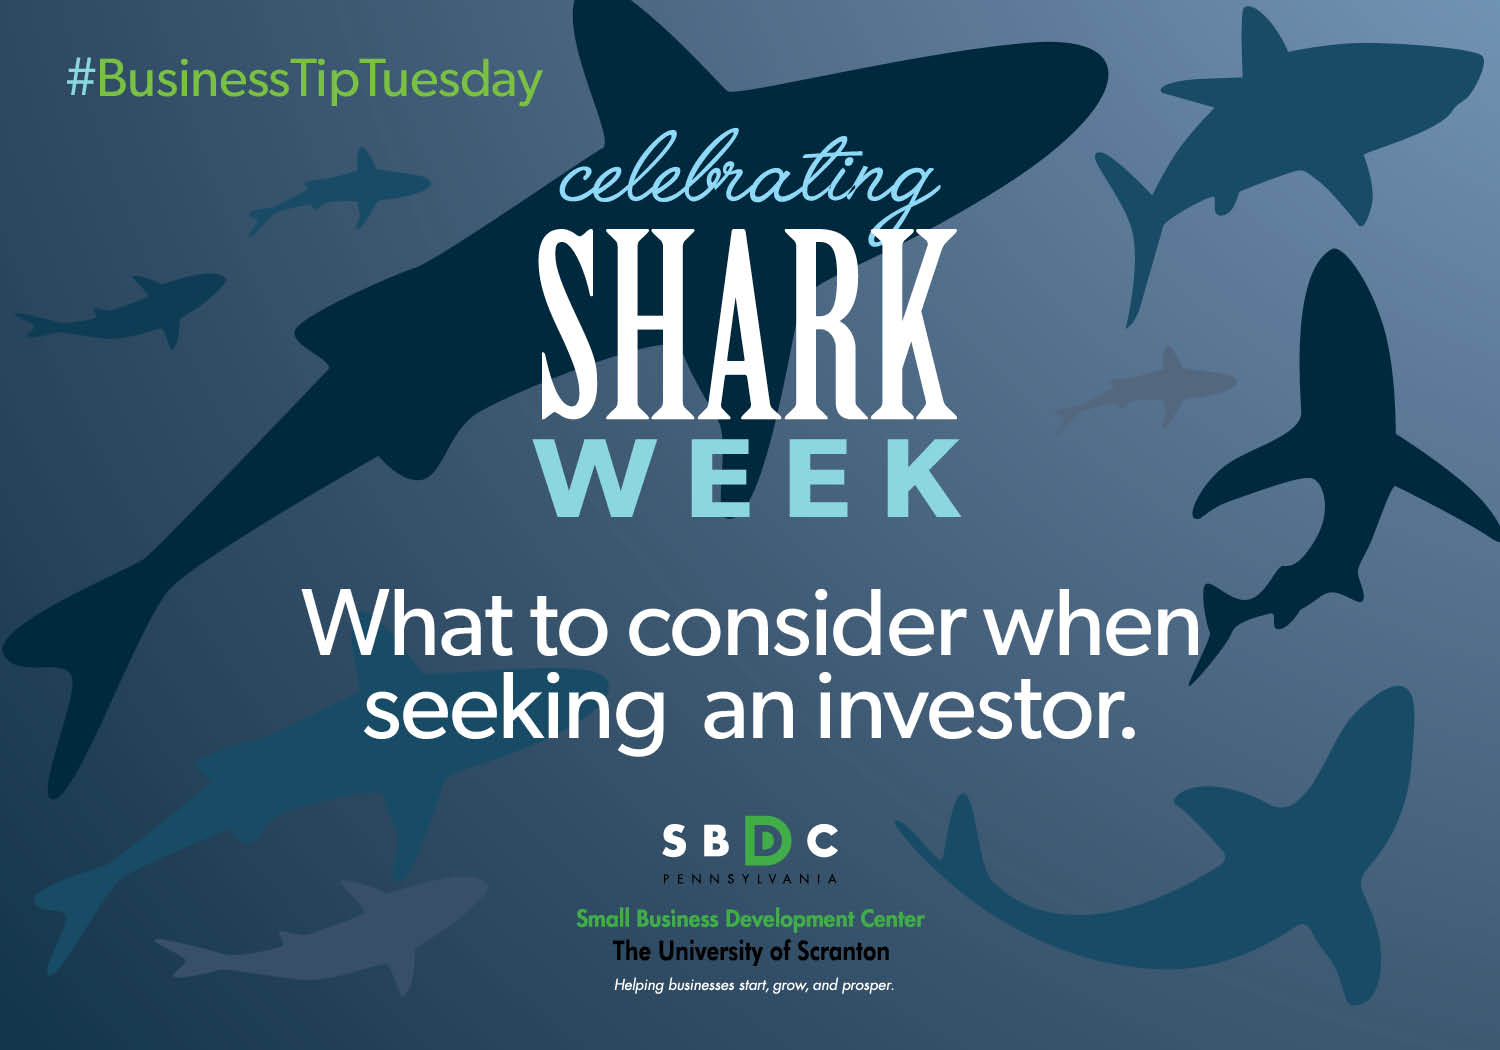 #BusinessTipTuesday – Shark Week and Investors